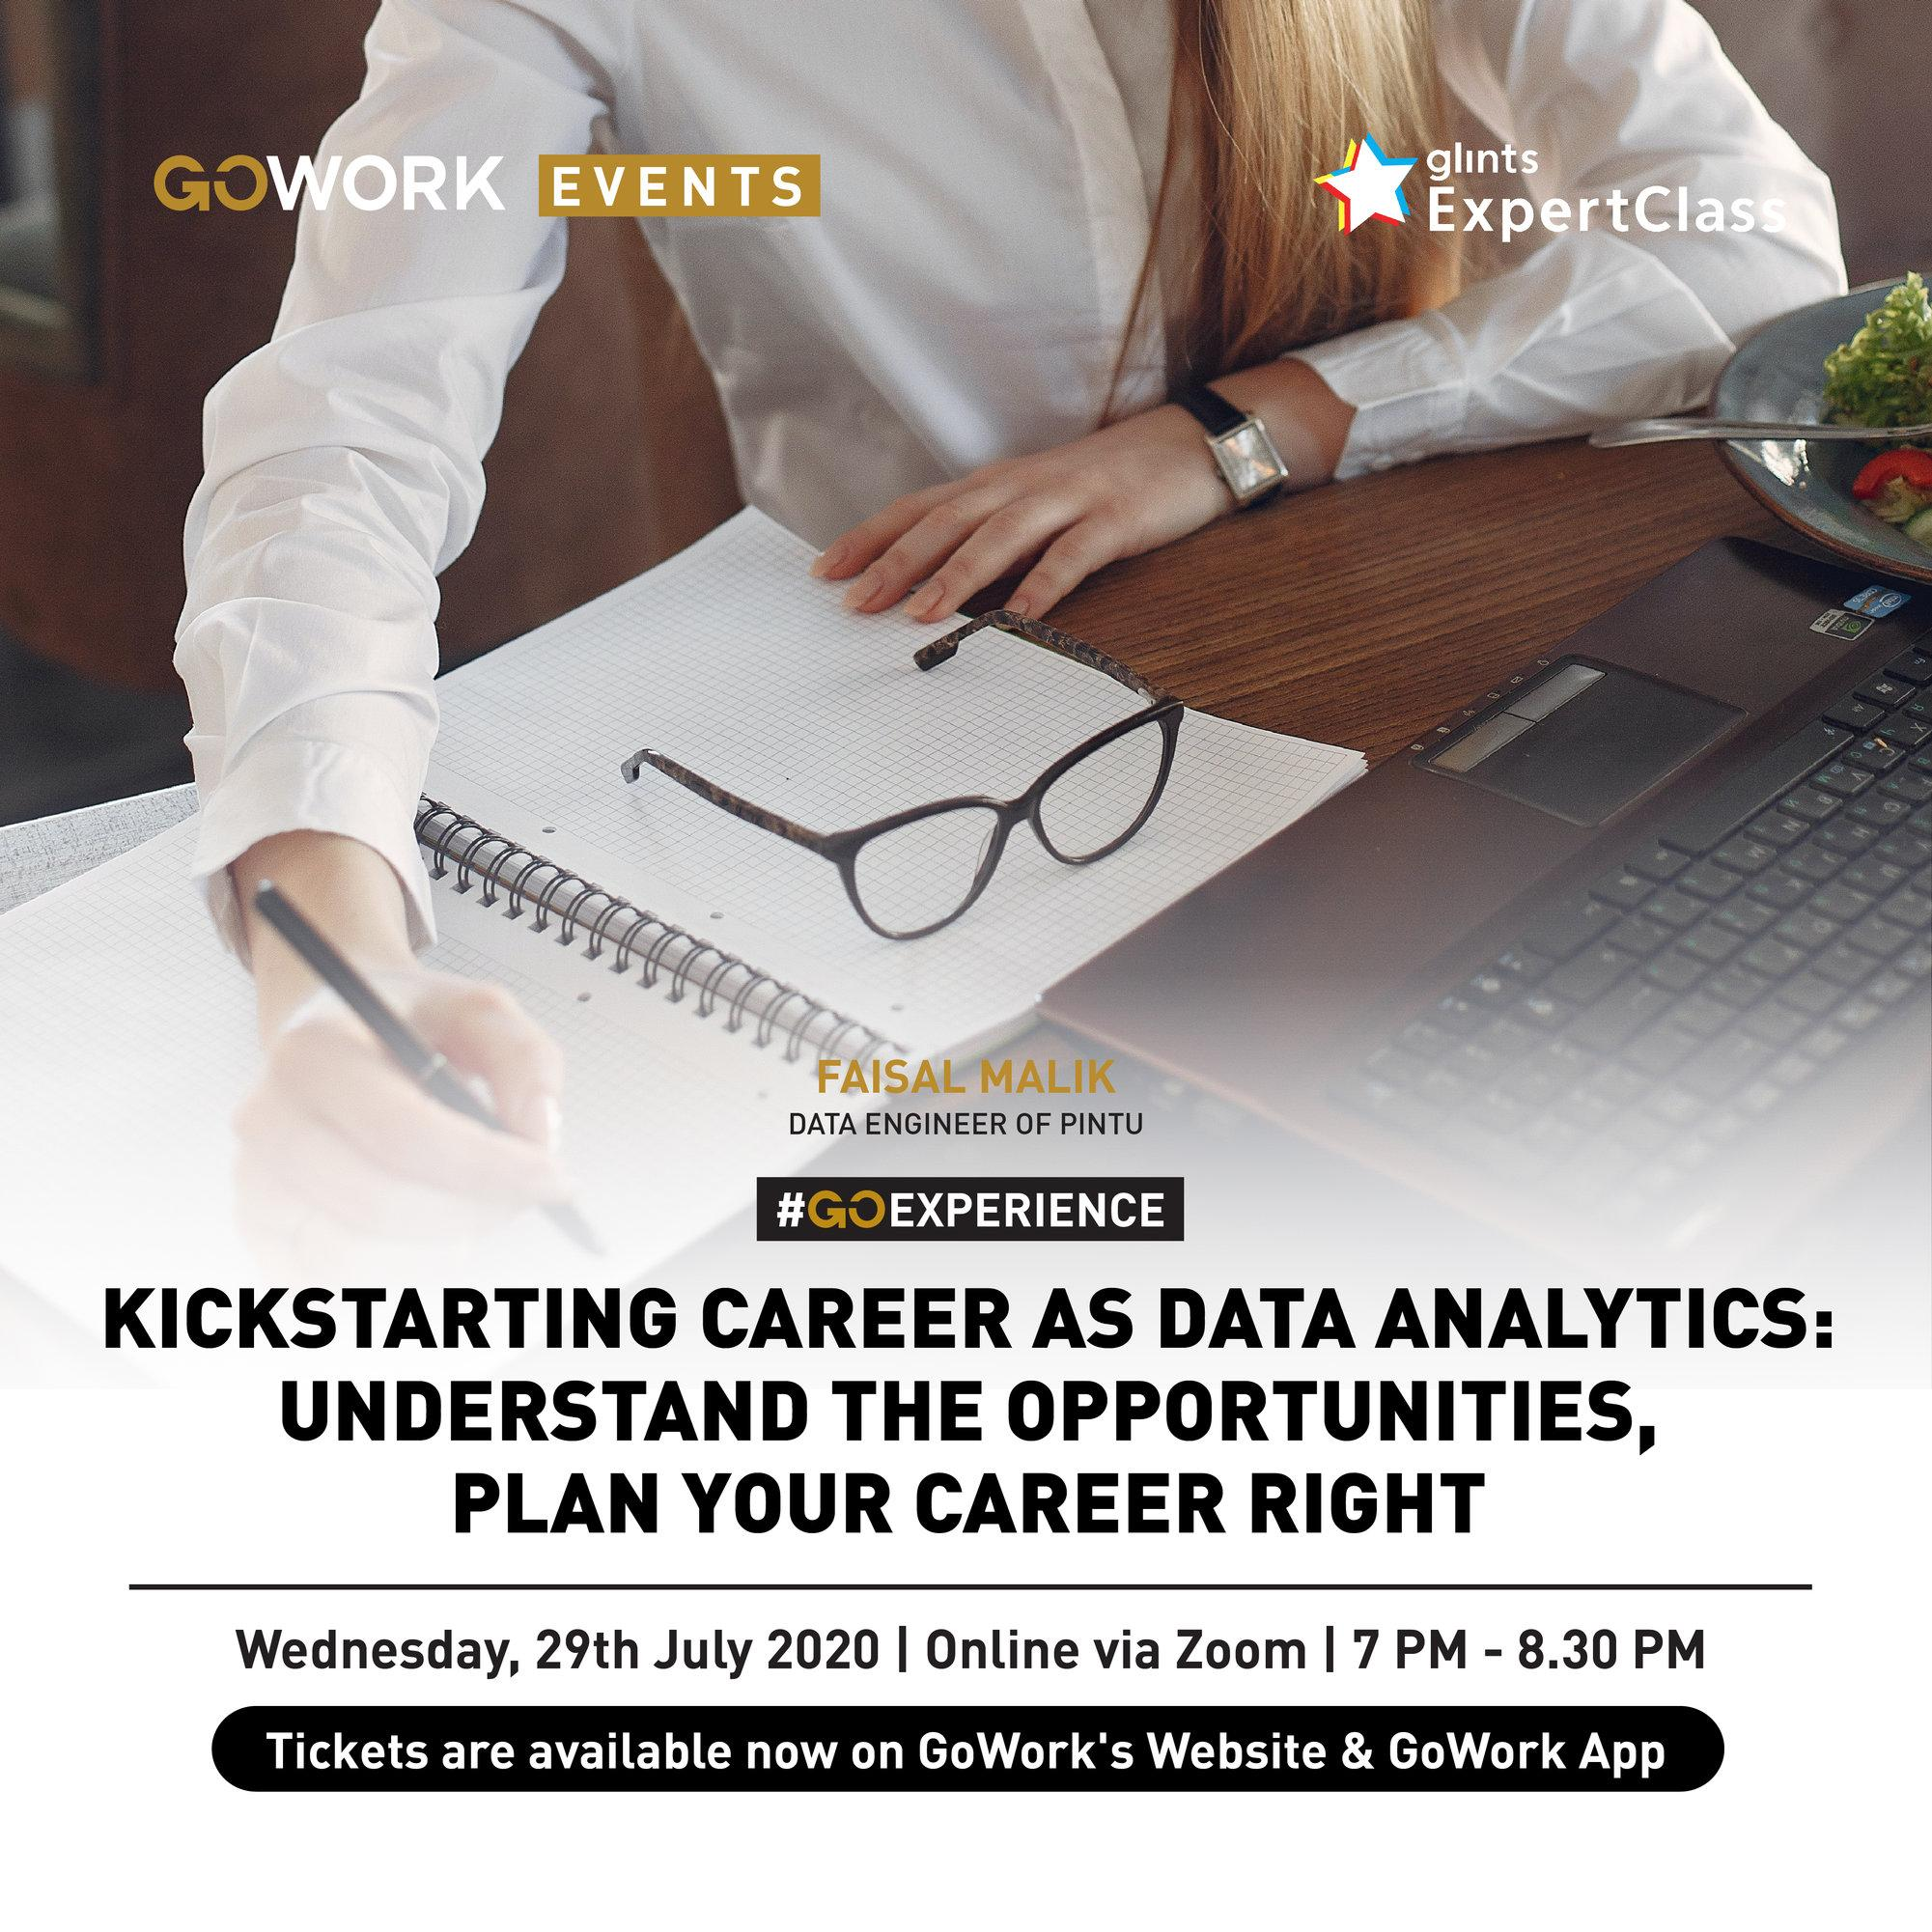 Kickstarting Career As Data Analytics: Understand The Opportunities, Plan Your Career Right